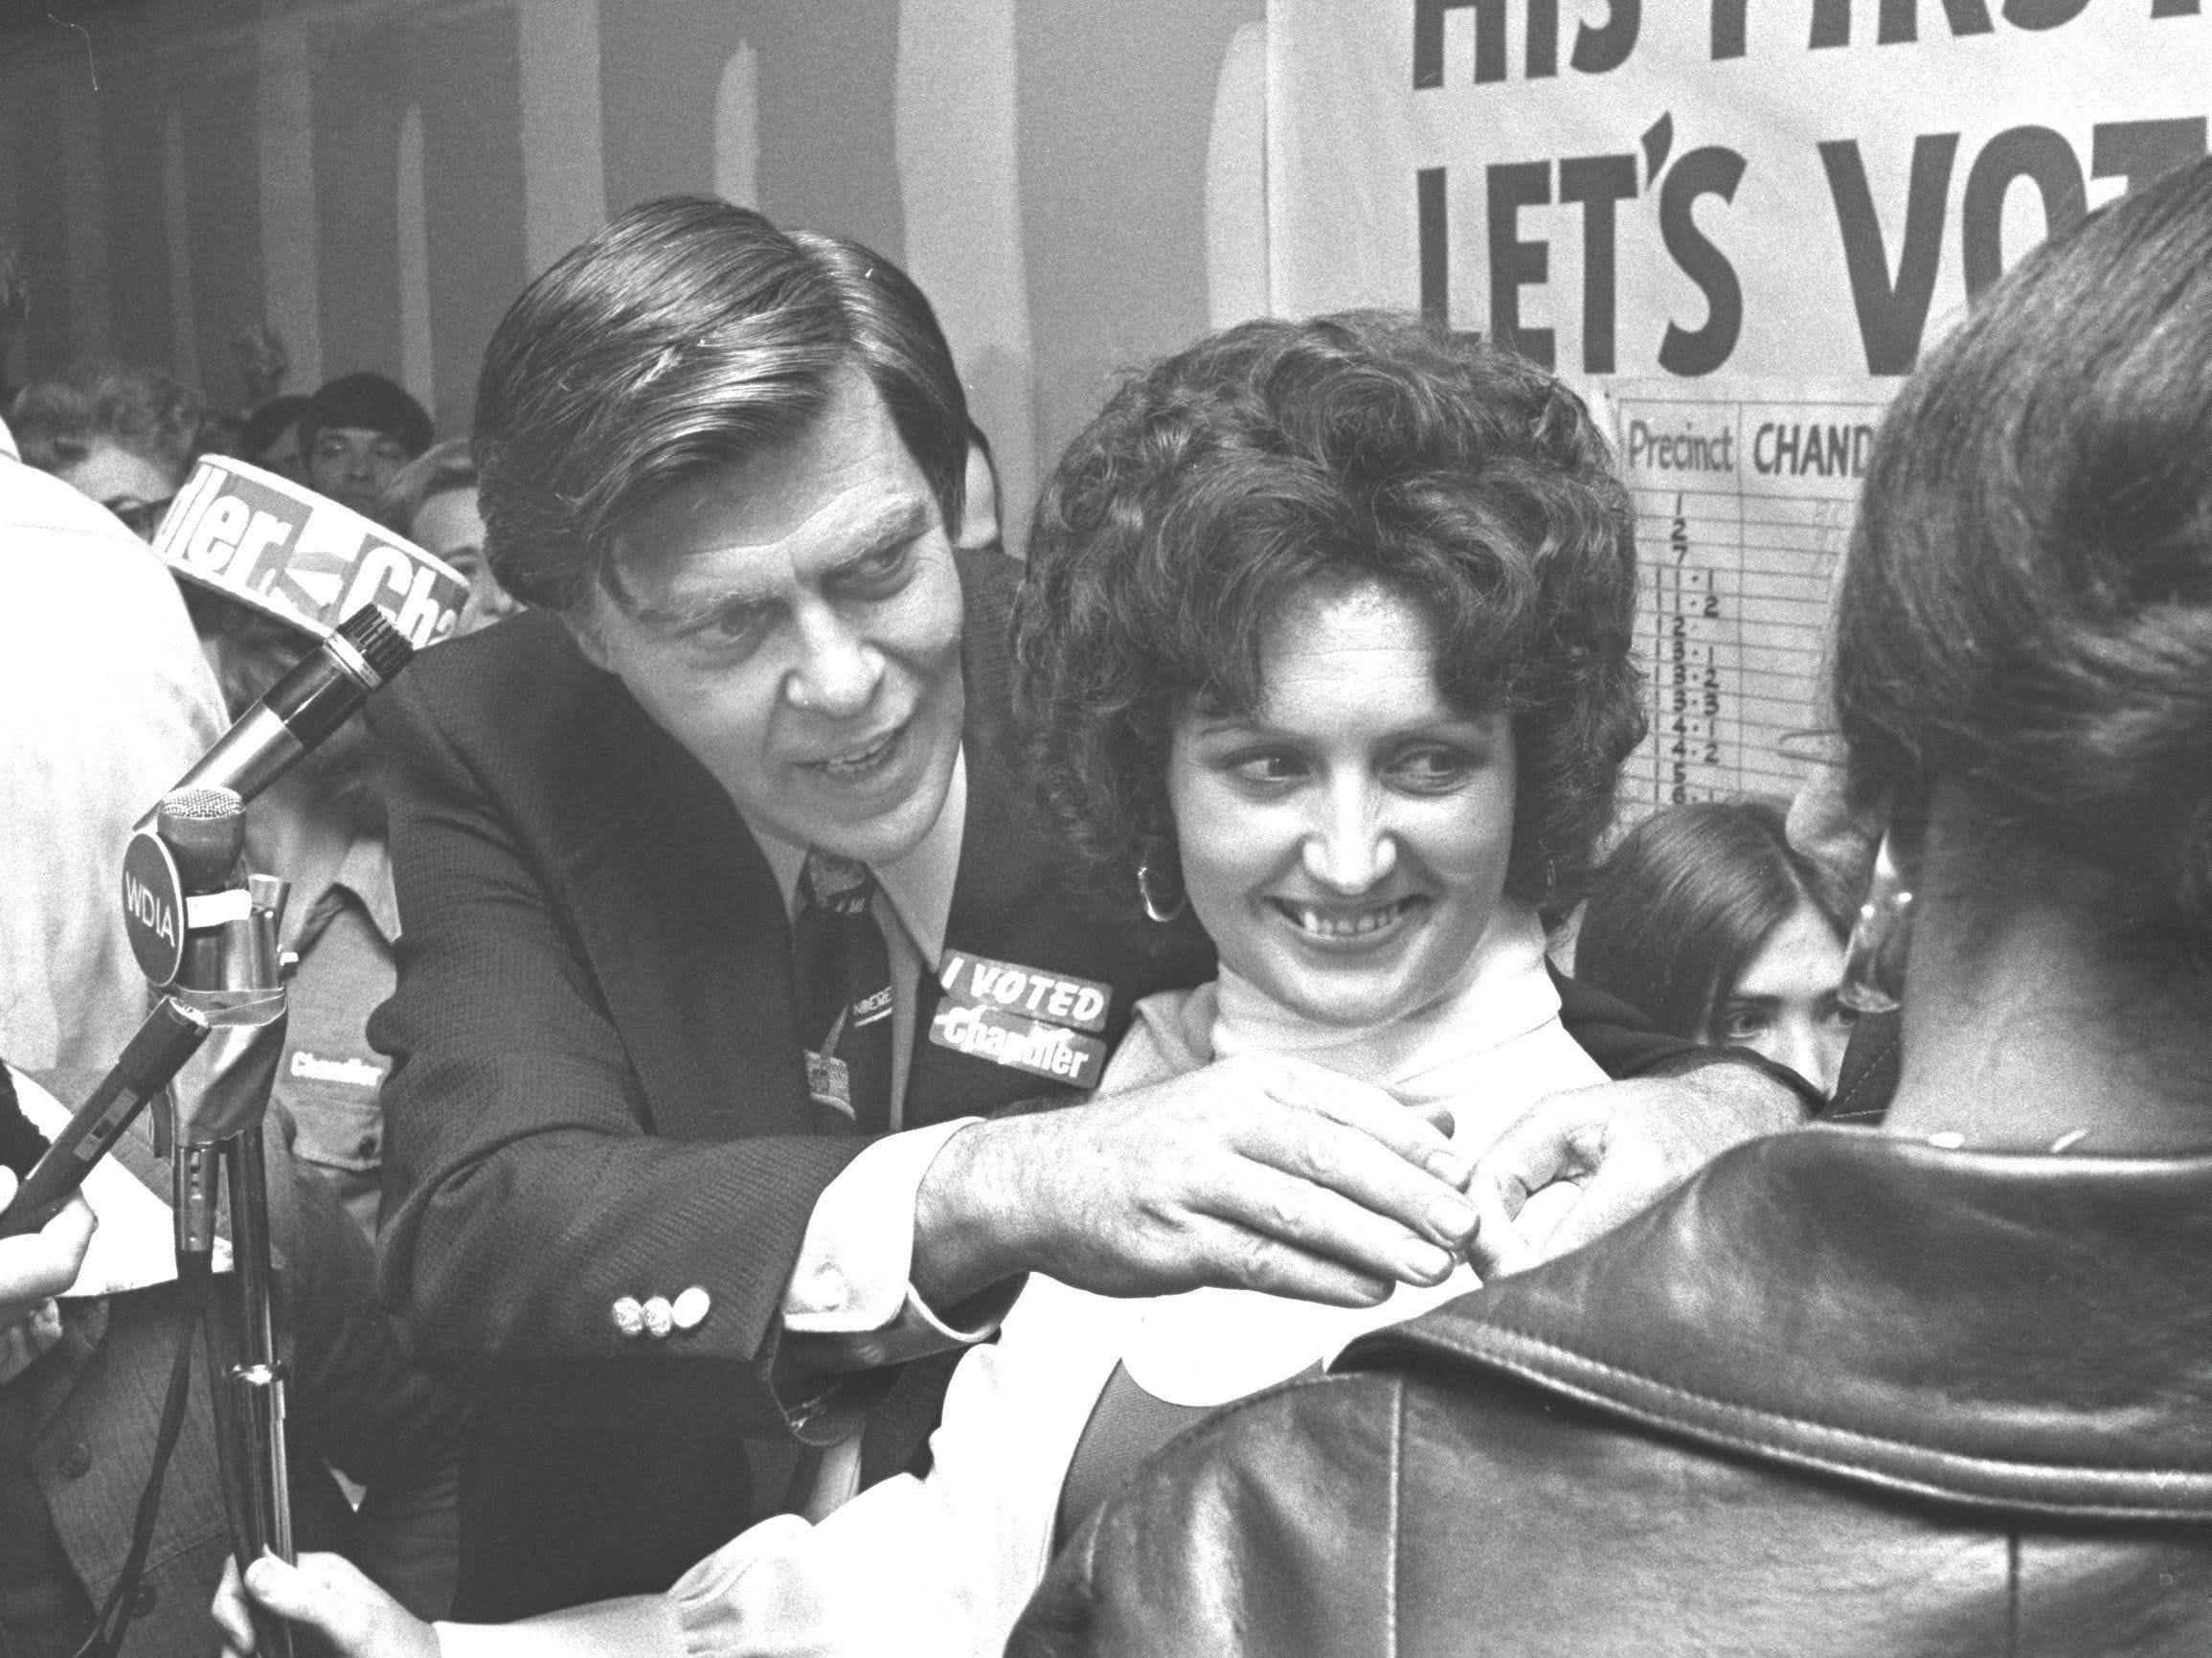 Mayor Wyeth Chandler and wife Linda receive congratulations after Chandler was elected to a second four-year term on 6 Nov 1975. He defeated former Criminal Court Judge Otis W. Higgs to become the first Memphis mayor to be elected to a second consecutive term since his father, the late Walter Chandler, was re-elected in 1944.